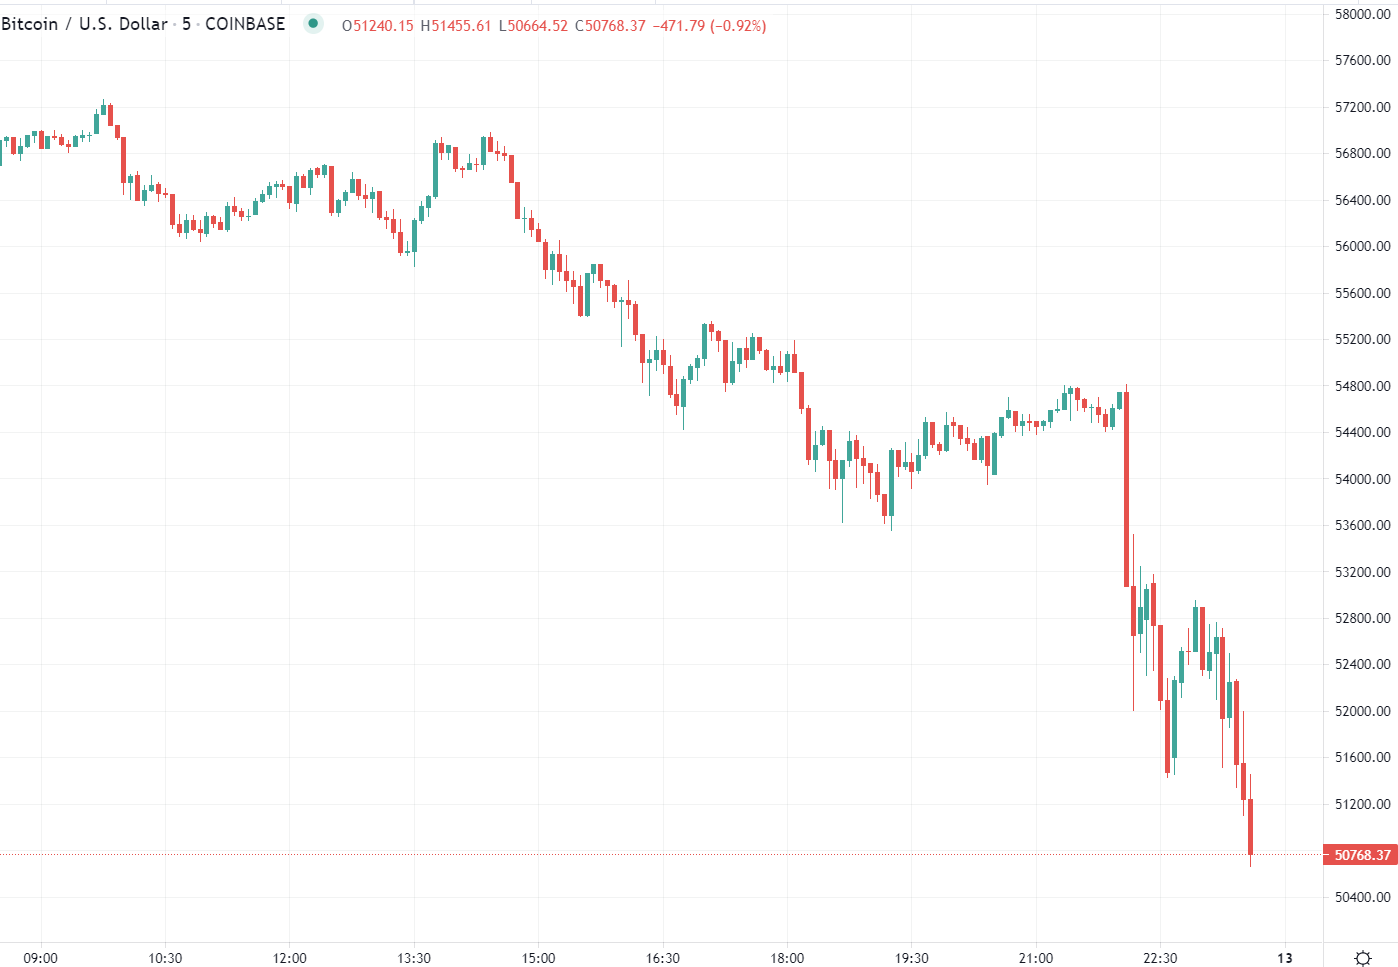 Bitcoin is continuing its slide after the Musk Tesla bombshell